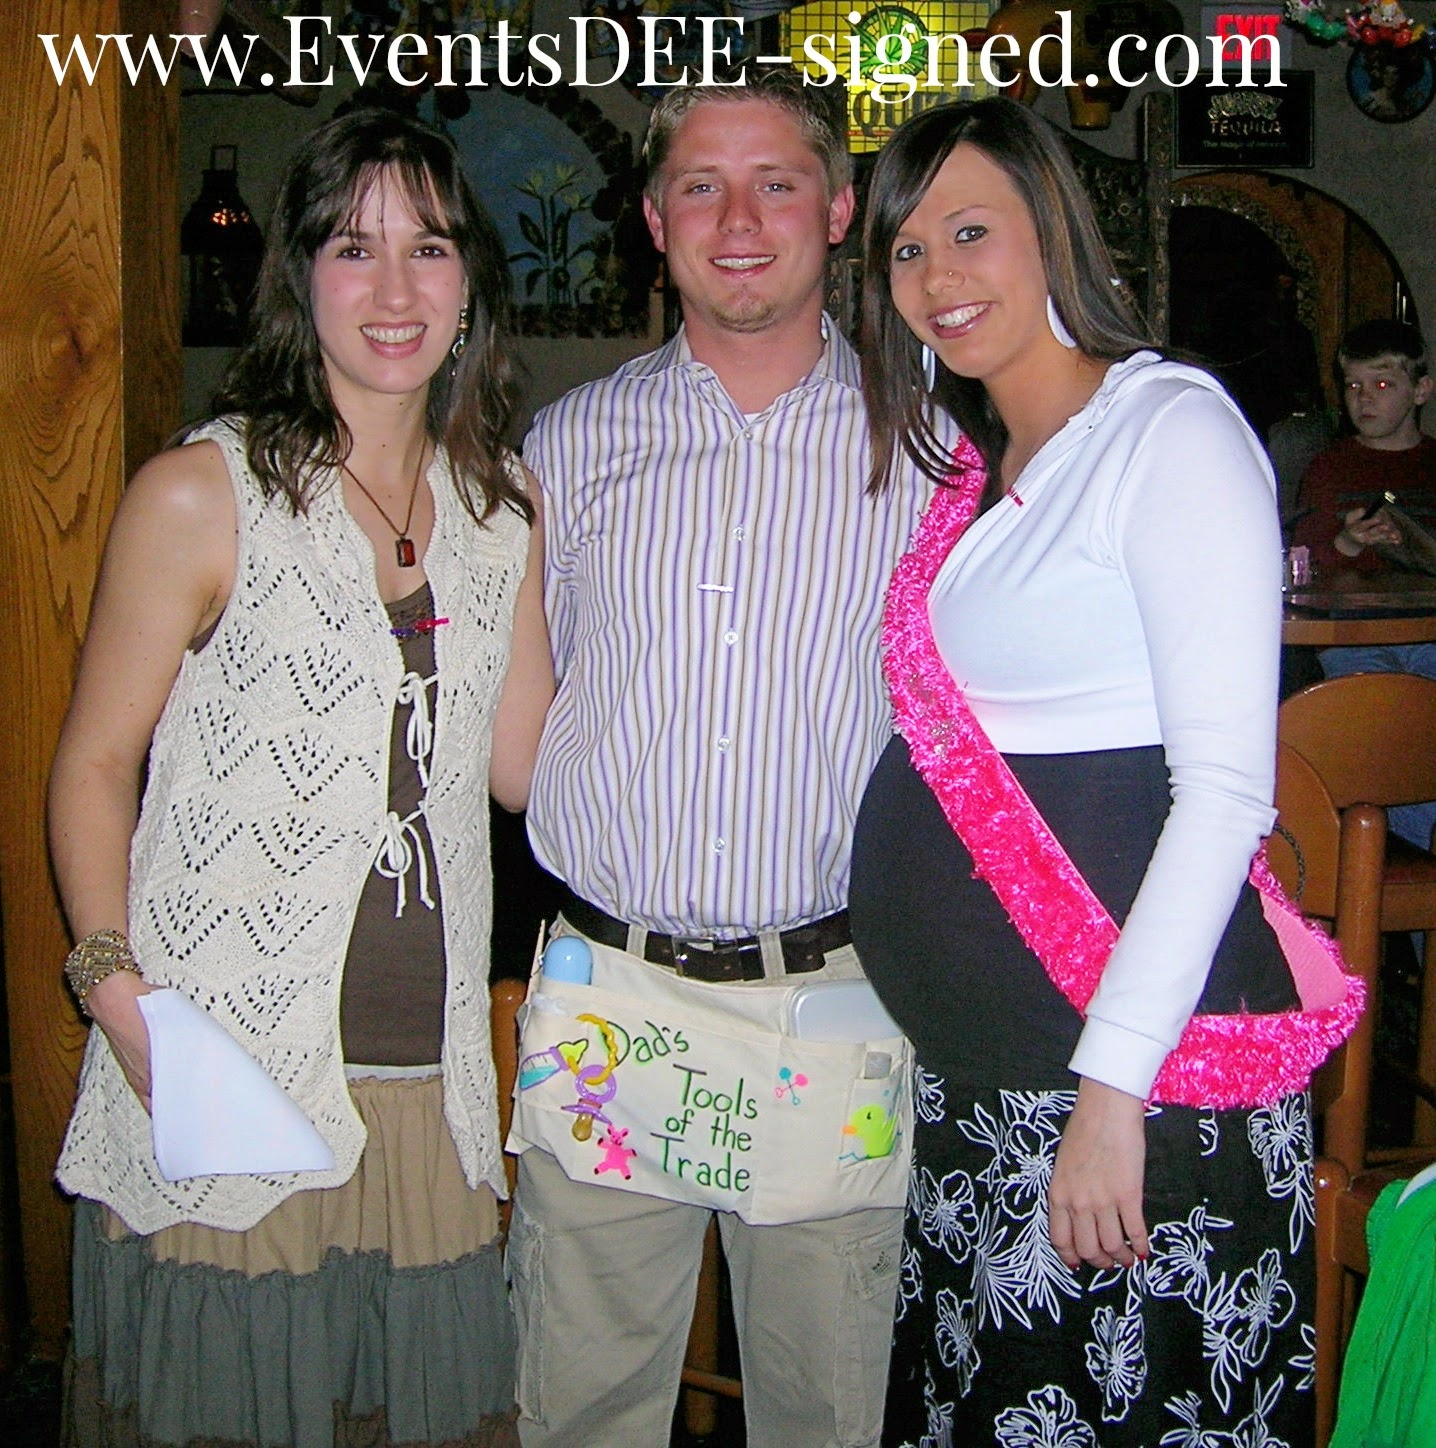 eventsdee signed co ed baby shower mom dad host